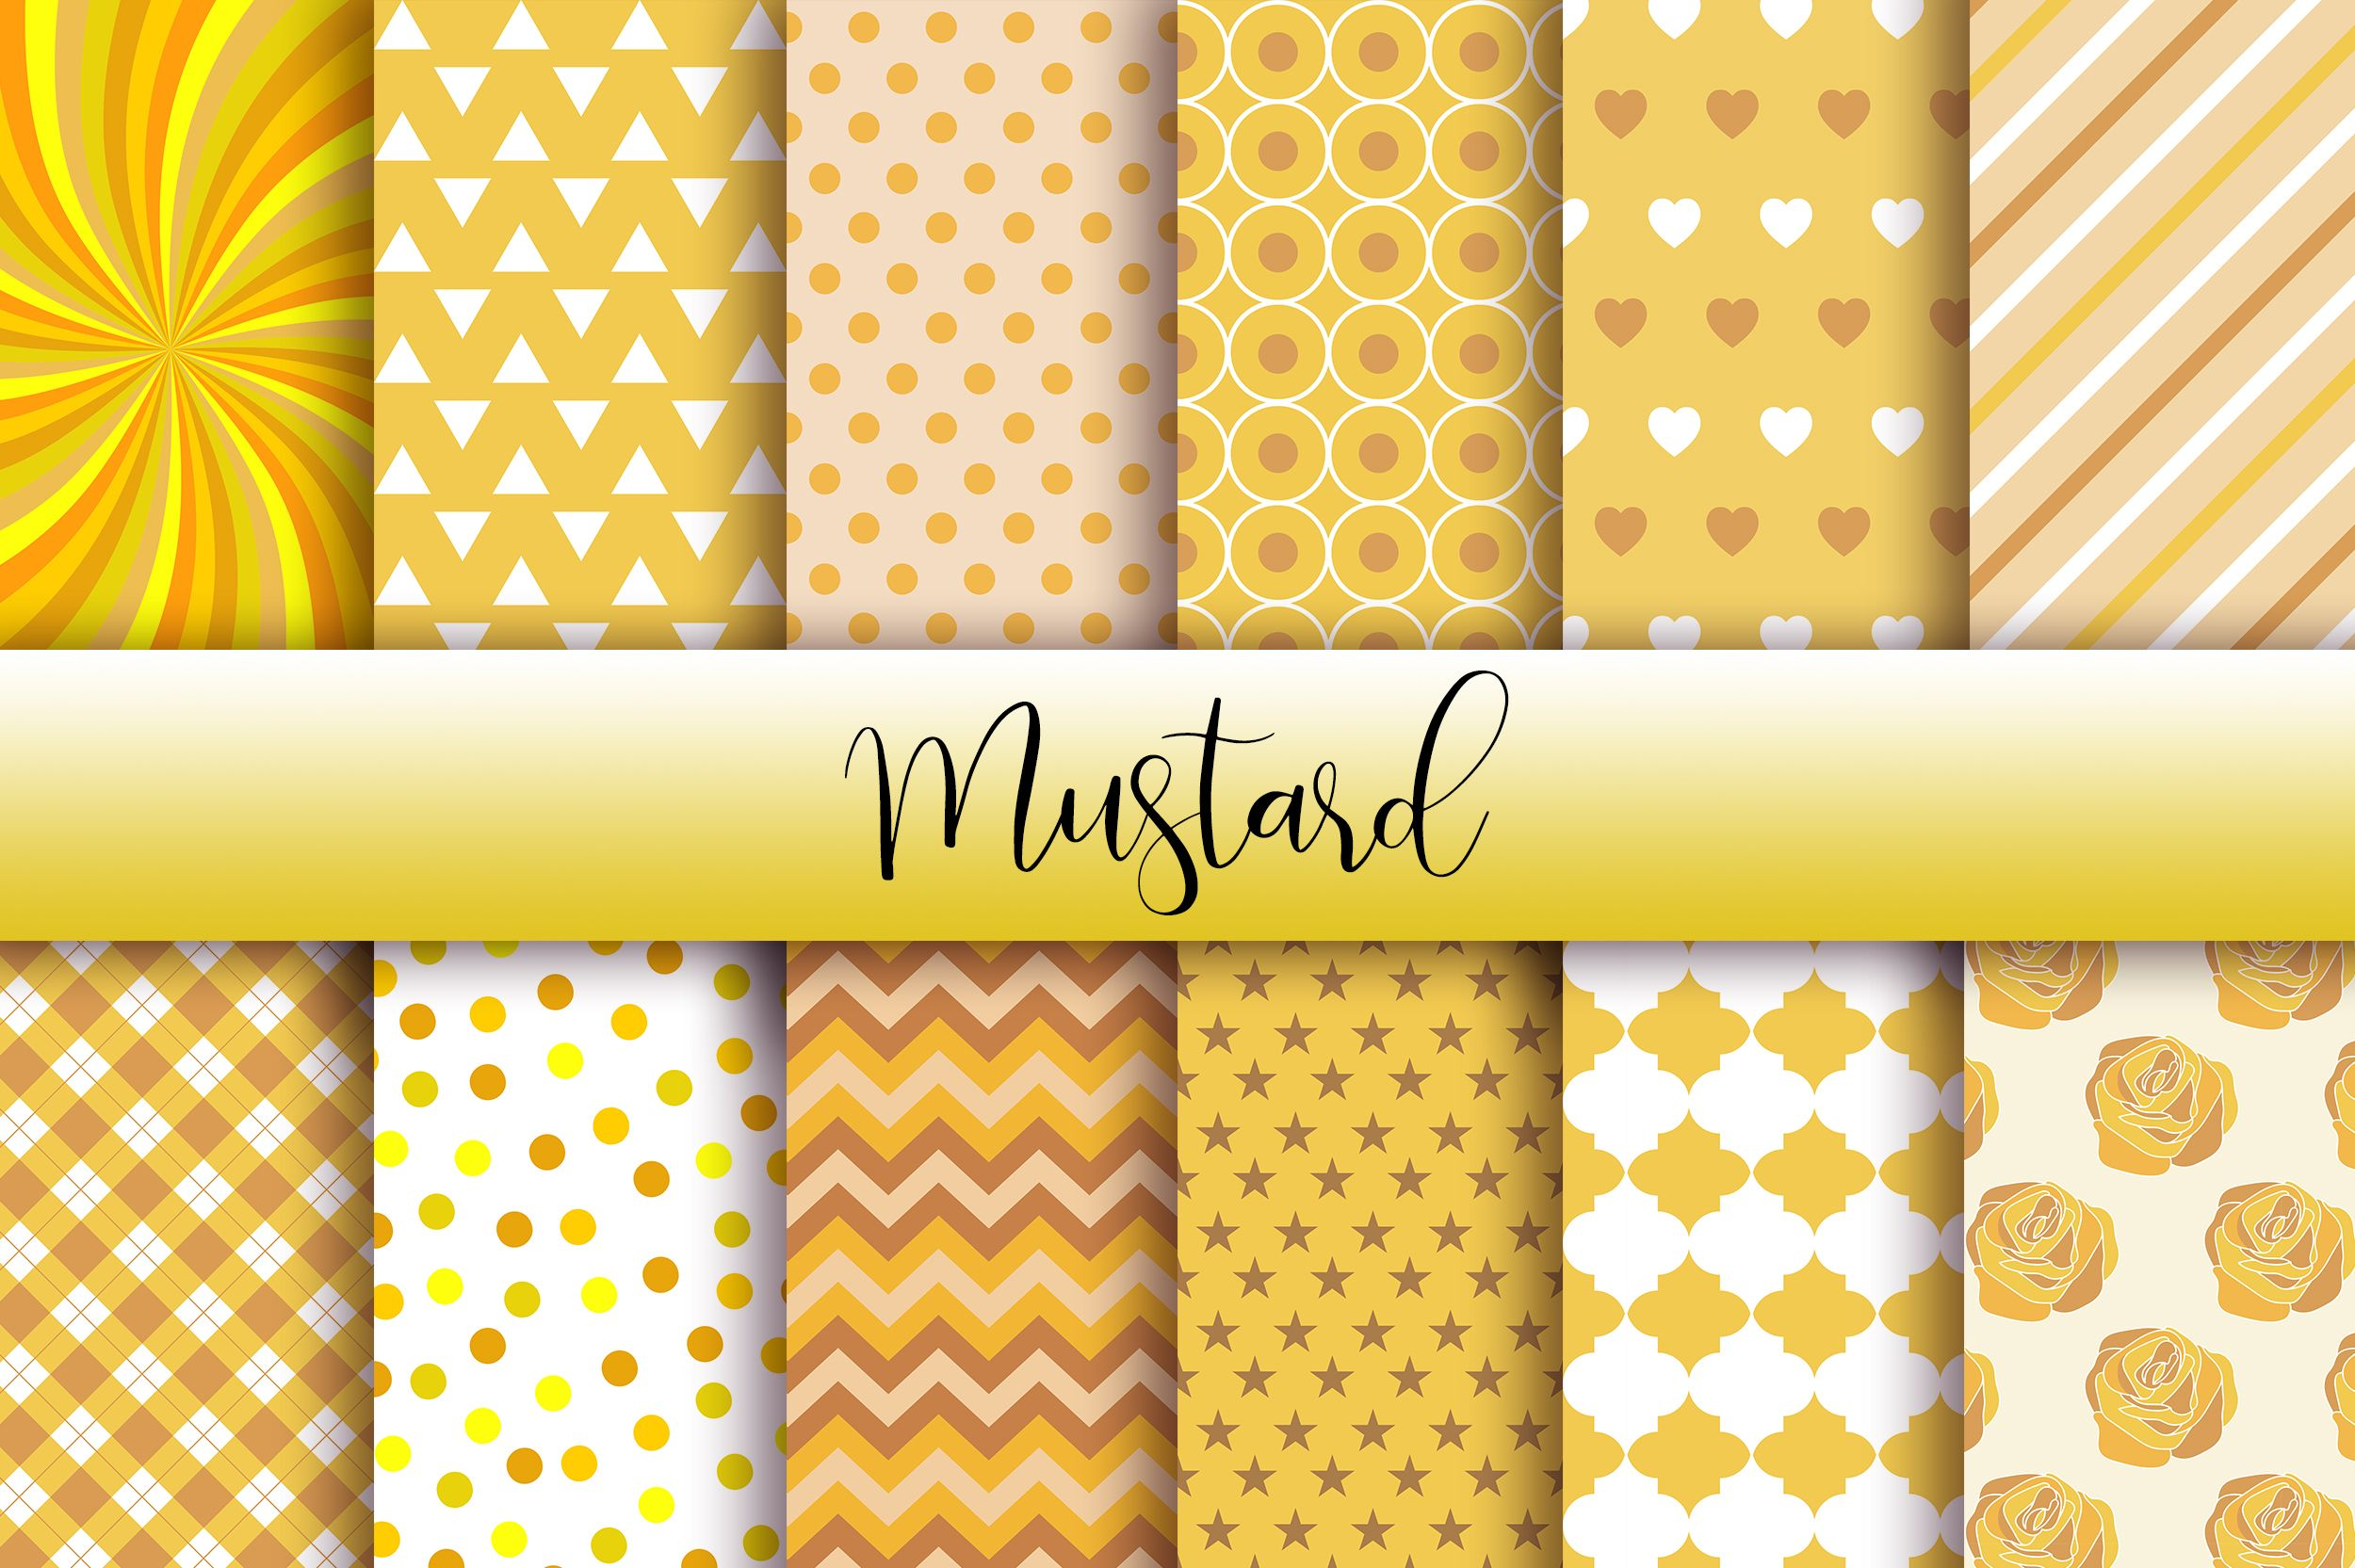 Mustard Background Digital Papers Perfect For Crafts Projects Graphic Design Cards Social Media Banners And More I In 2020 Digital Paper Social Media Banner Paper